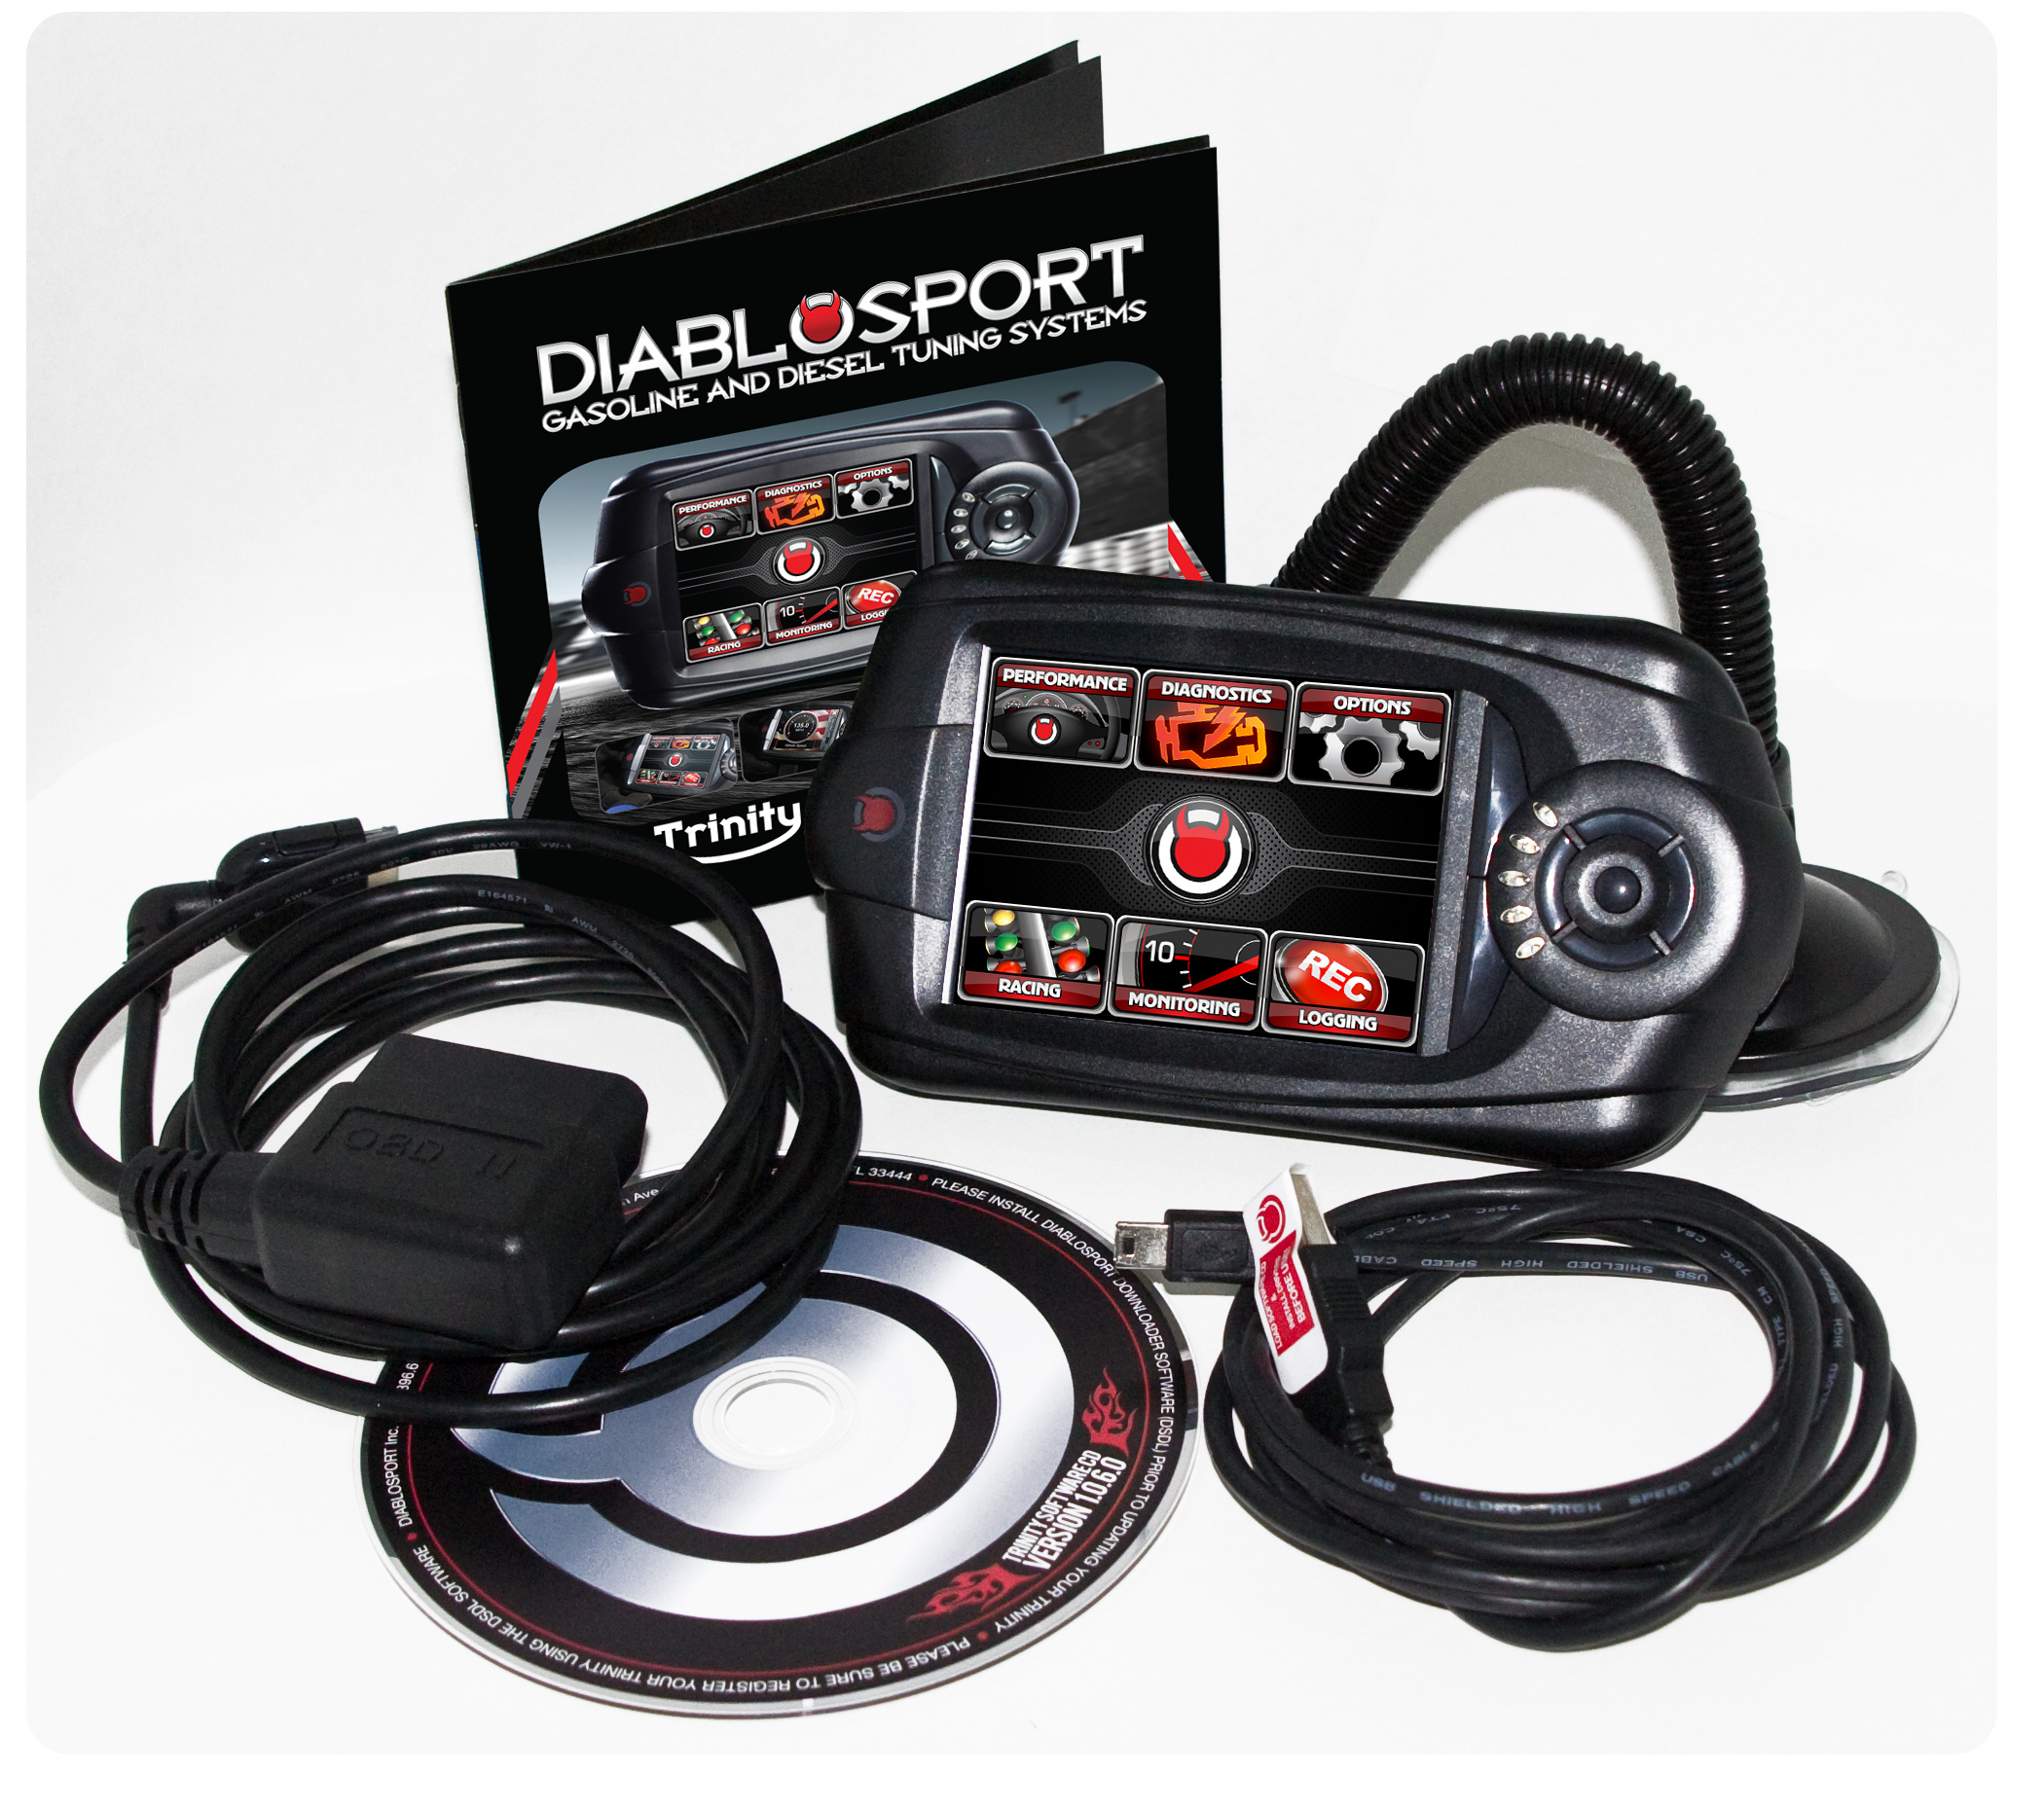 Gmc Denali 2007-2012  6.0l Diablosport T1000 Trinity Performance Tuner